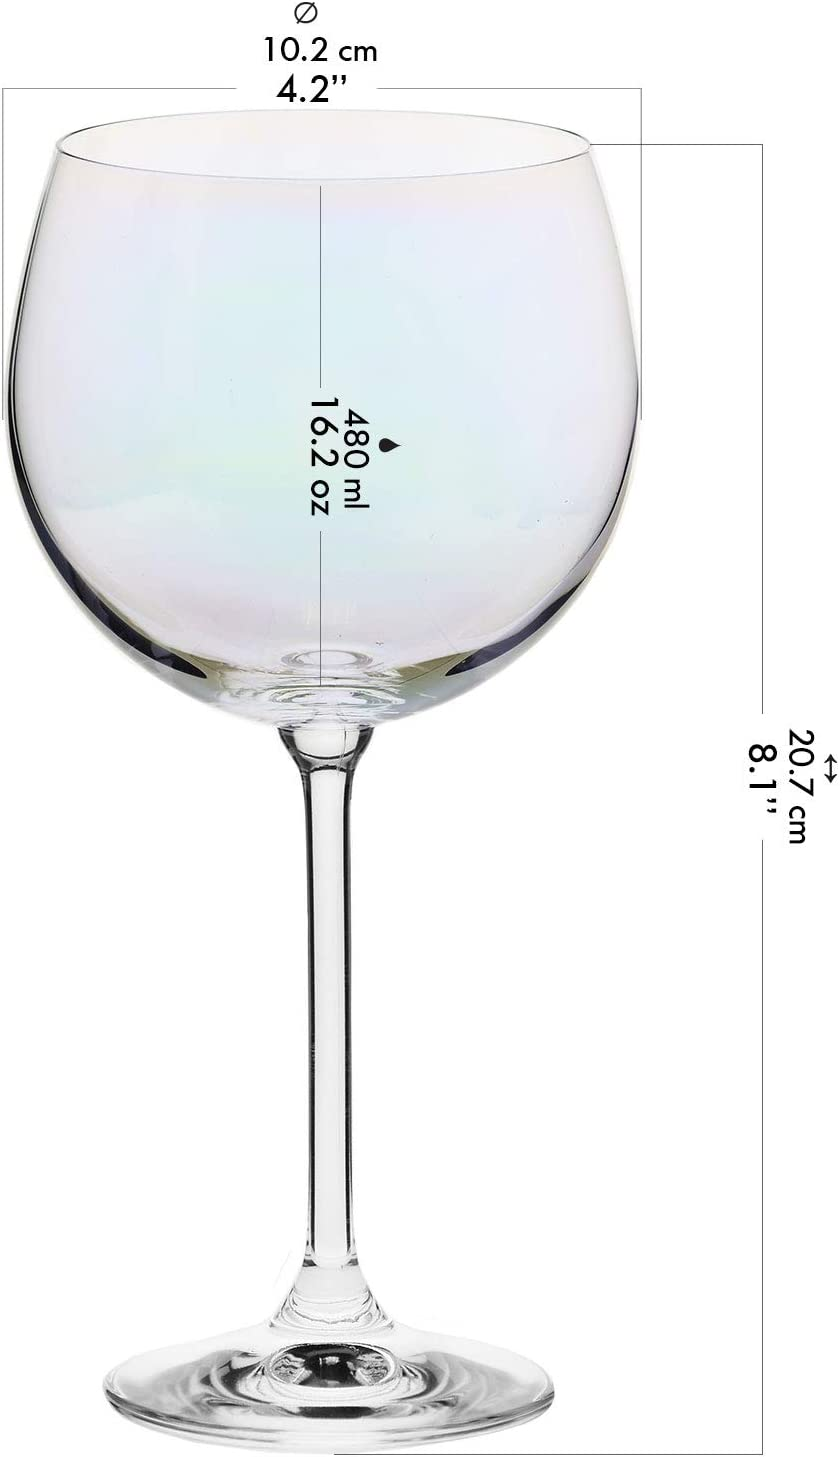 Venezia Collection Krosno Rainbow-Pearl Iridescent Cocktail Gin Tonic Balloon Water Glasses Ideal for Home Restaurant Set of 6 Pieces Events /& Parties 480 ml